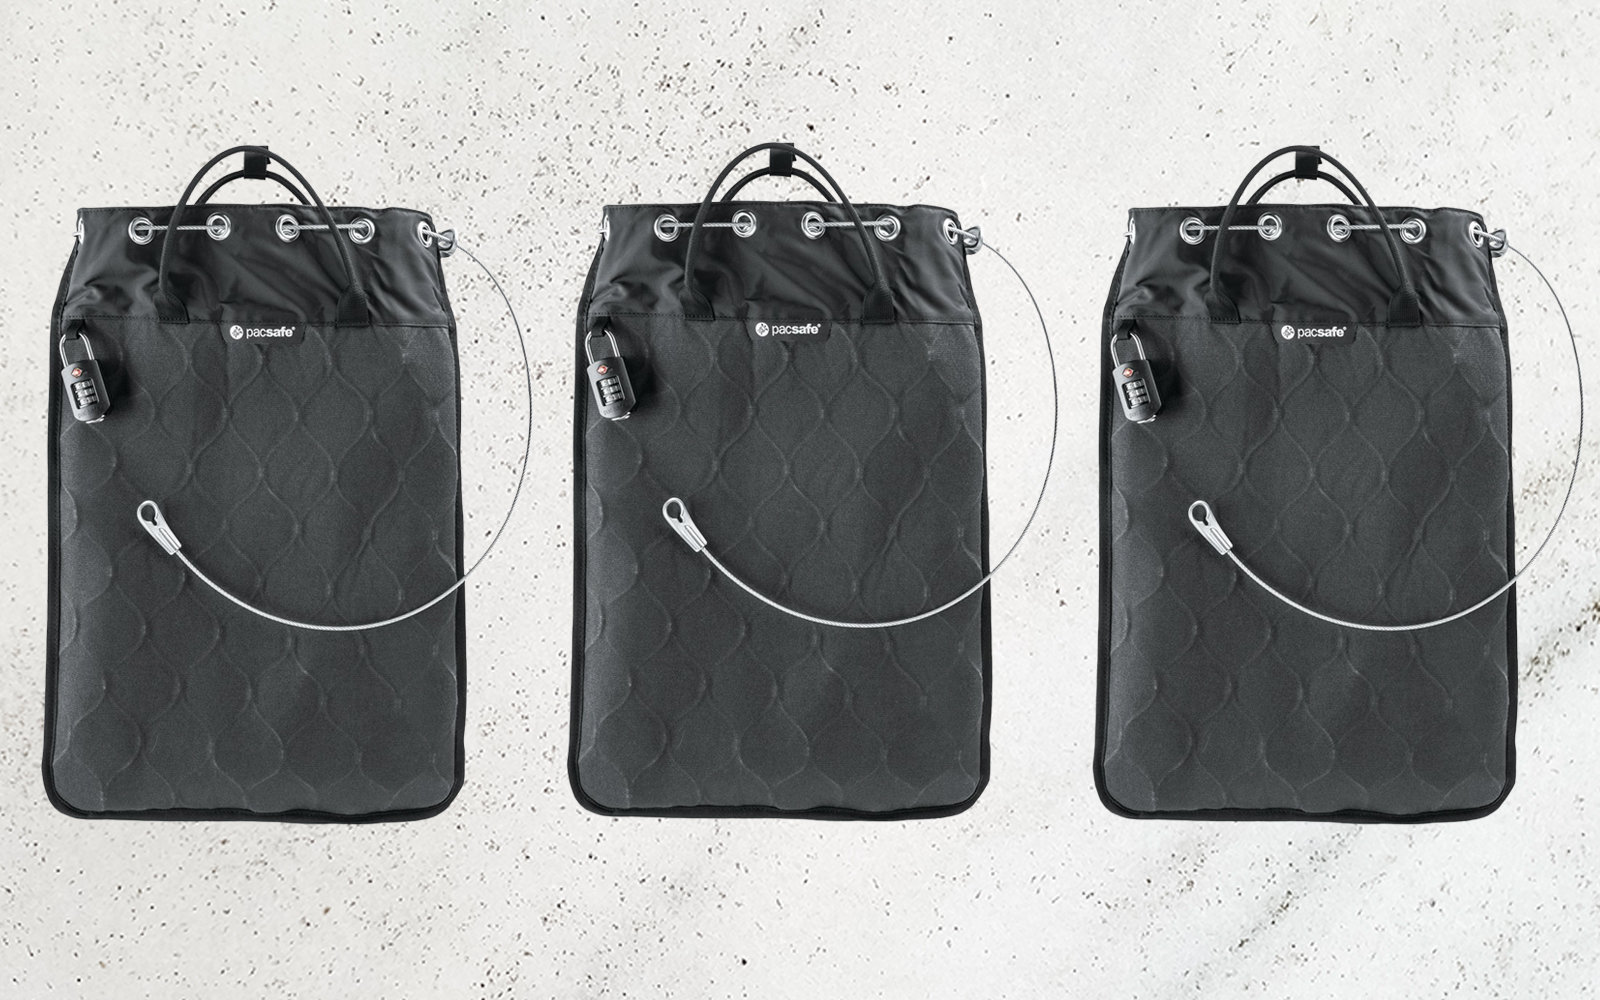 The Best Portable Safe to Protect Your Valuables While Traveling